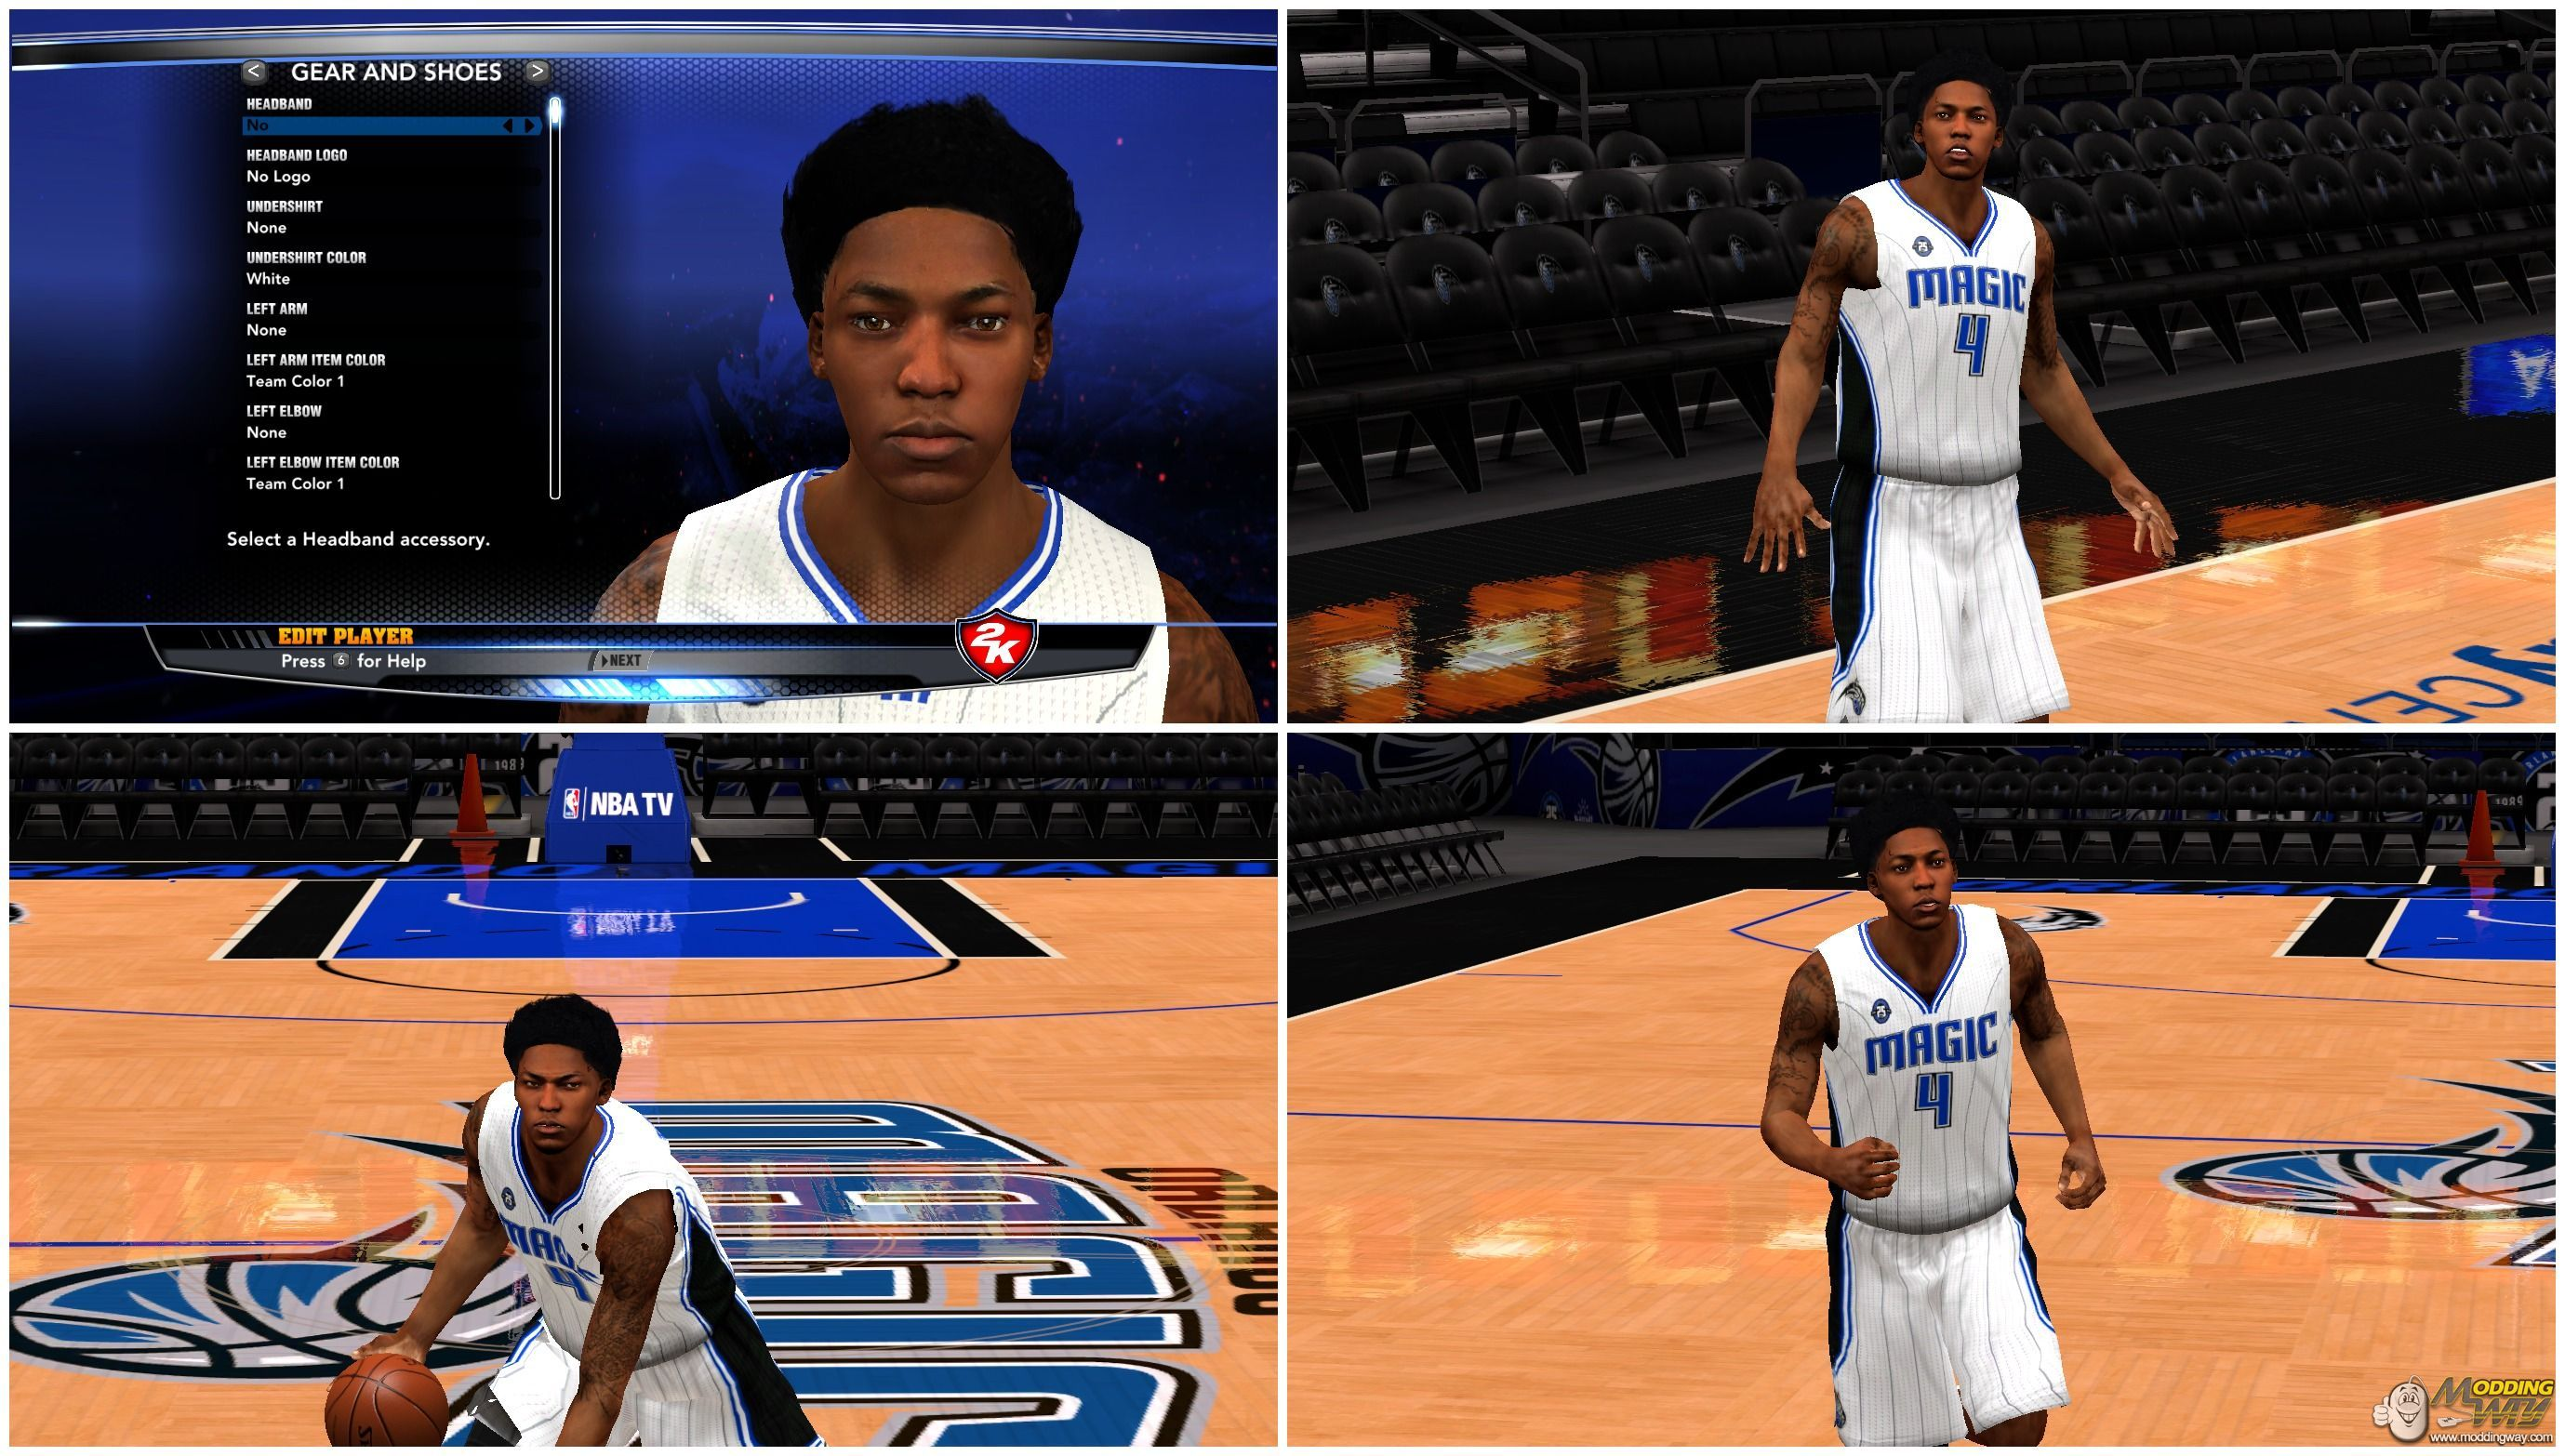 Elfrid Payton Next Gen Nba 2k14 At Moddingway